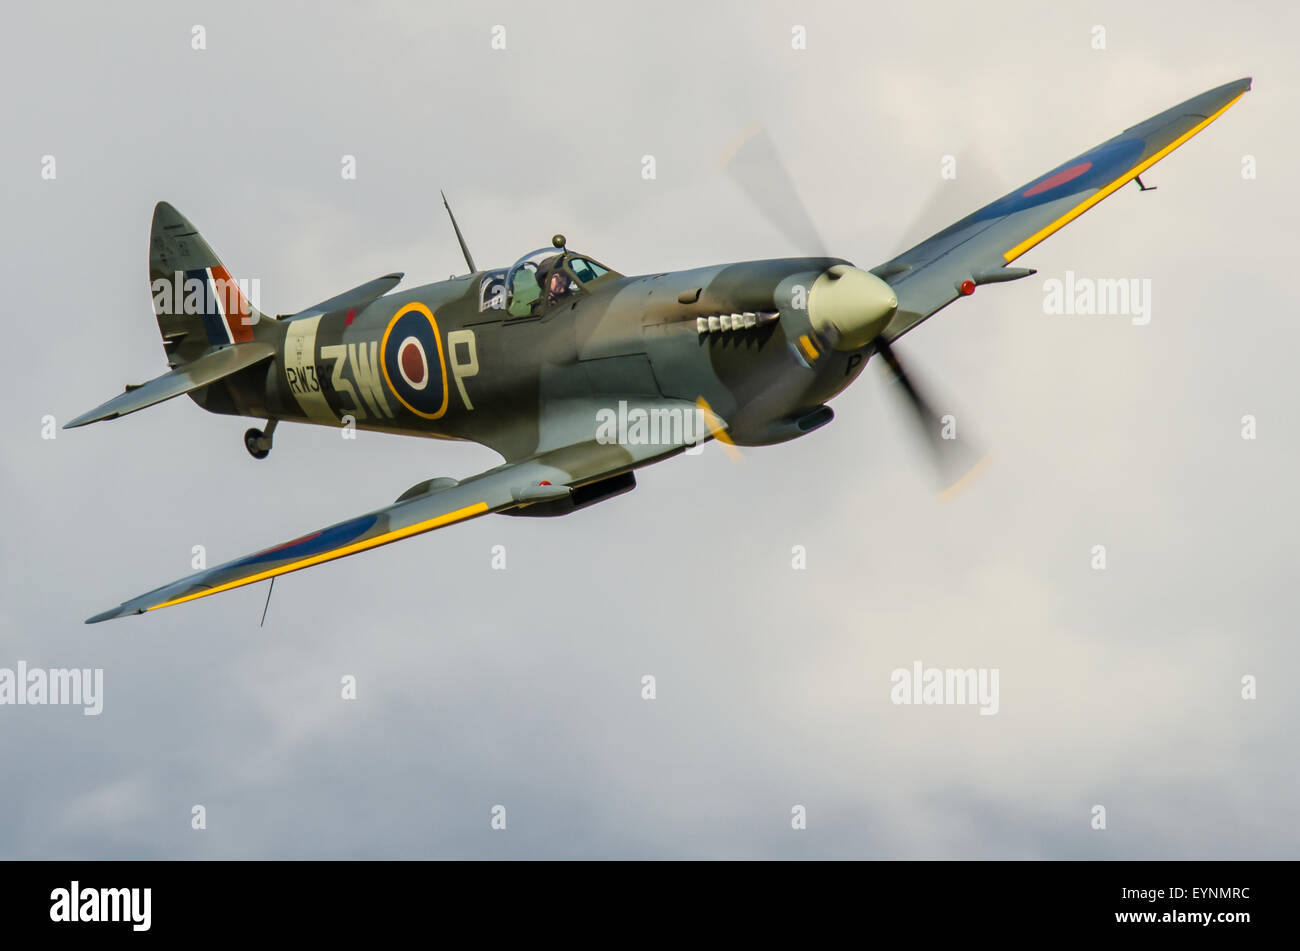 pilot-dan-griffith-flying-spitfire-plane-operated-by-the-biggin-hill-EYNMRC.jpg